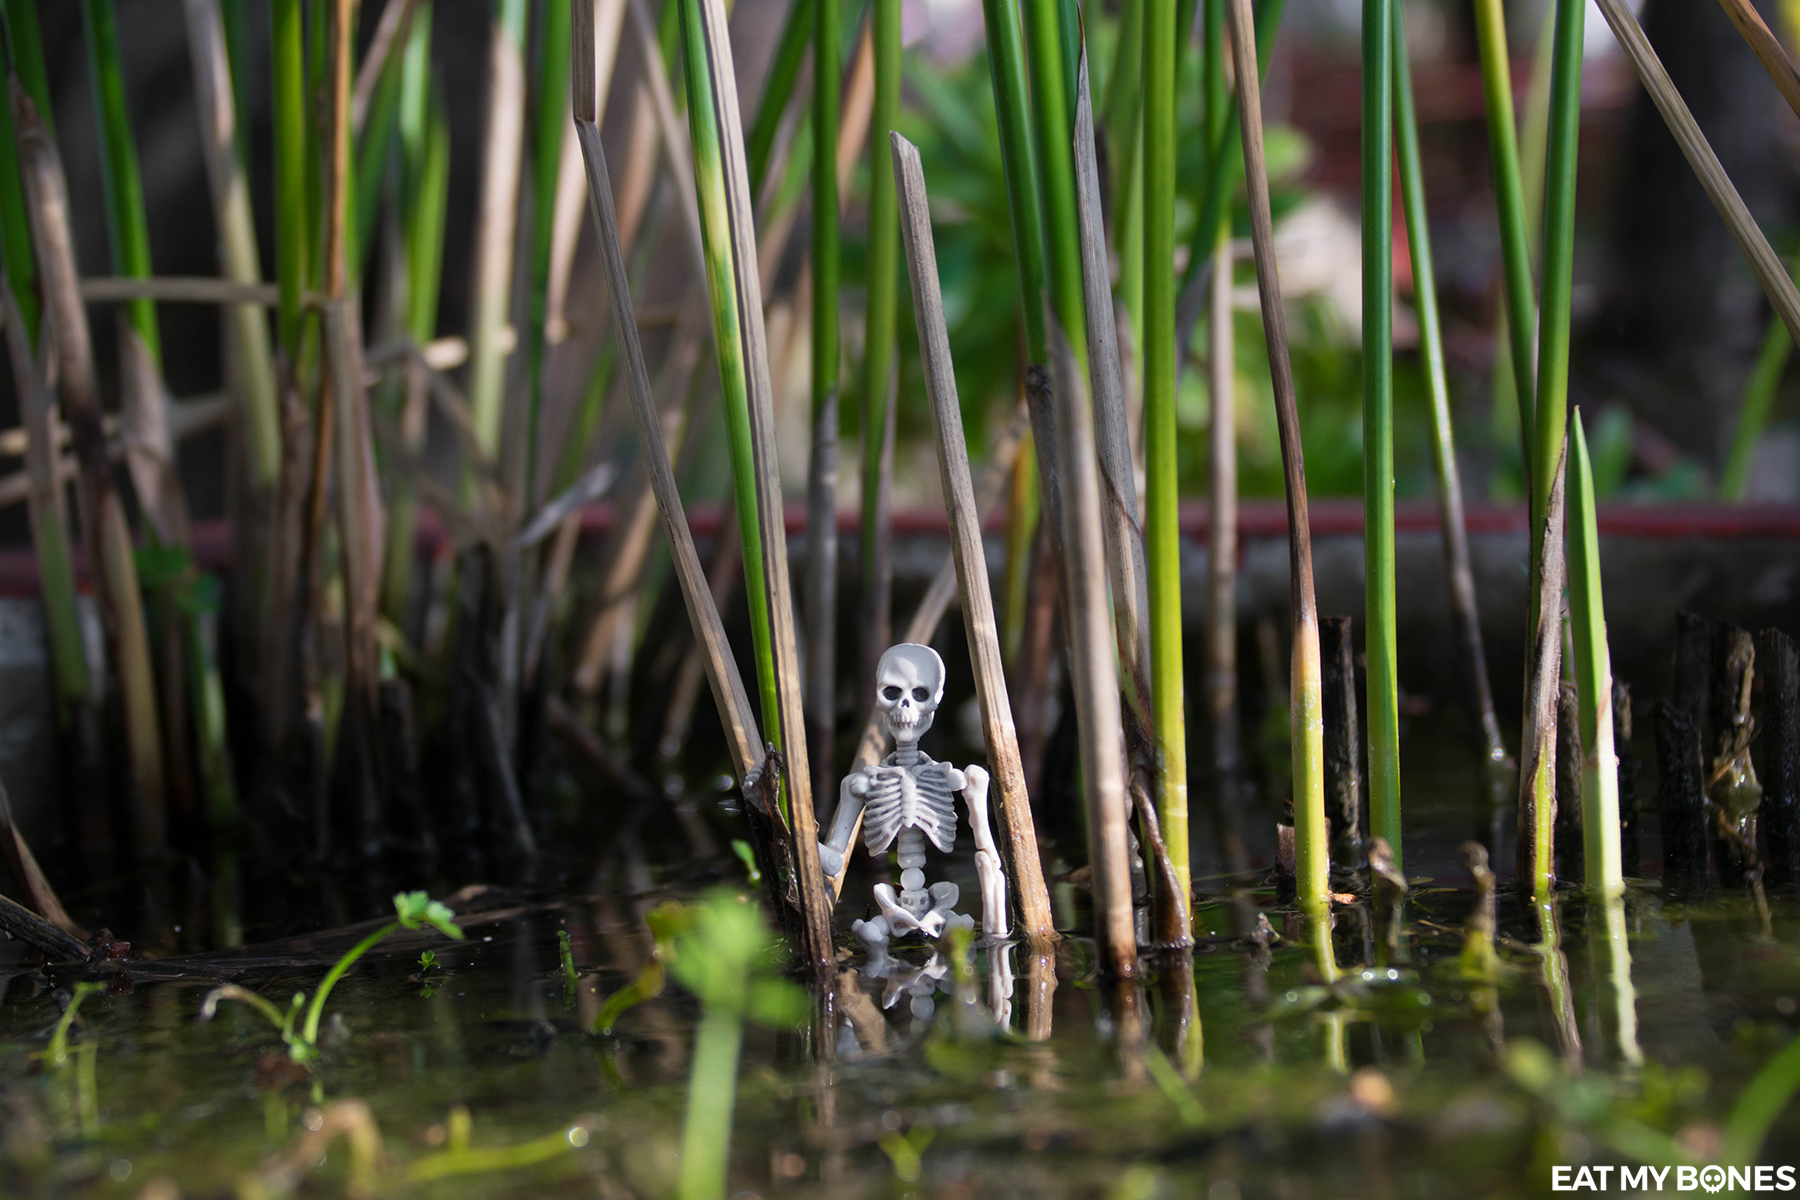 Frejus Pagoda Buddhist - Pose Skeleton - Toy photography - Miniature - Eat my Bones